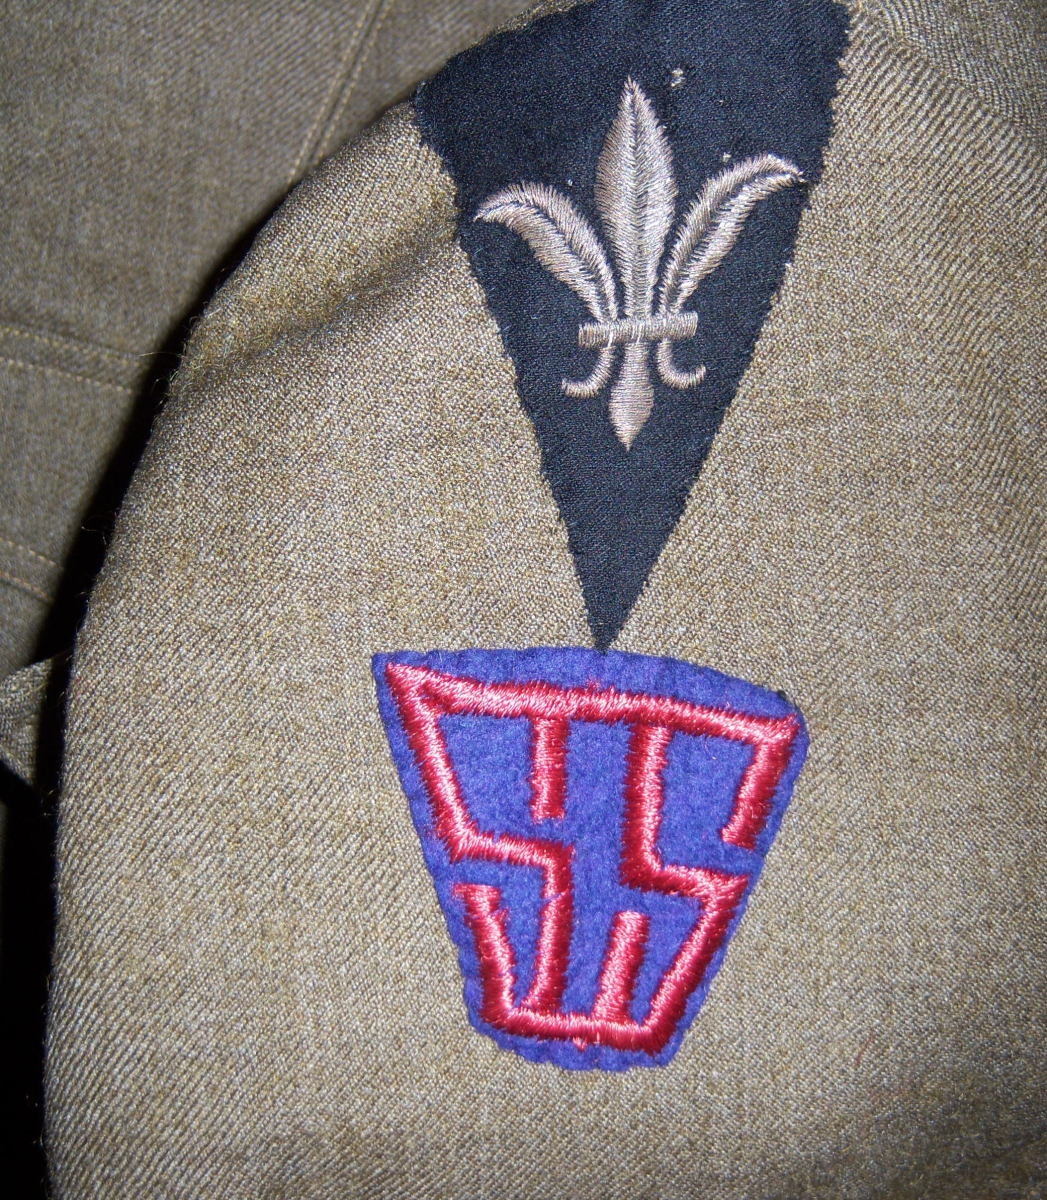 Not to be outdone by the soldiers of the Third Army, this District of Paris Doughboy has added a Services of Supply patch to his uniform.